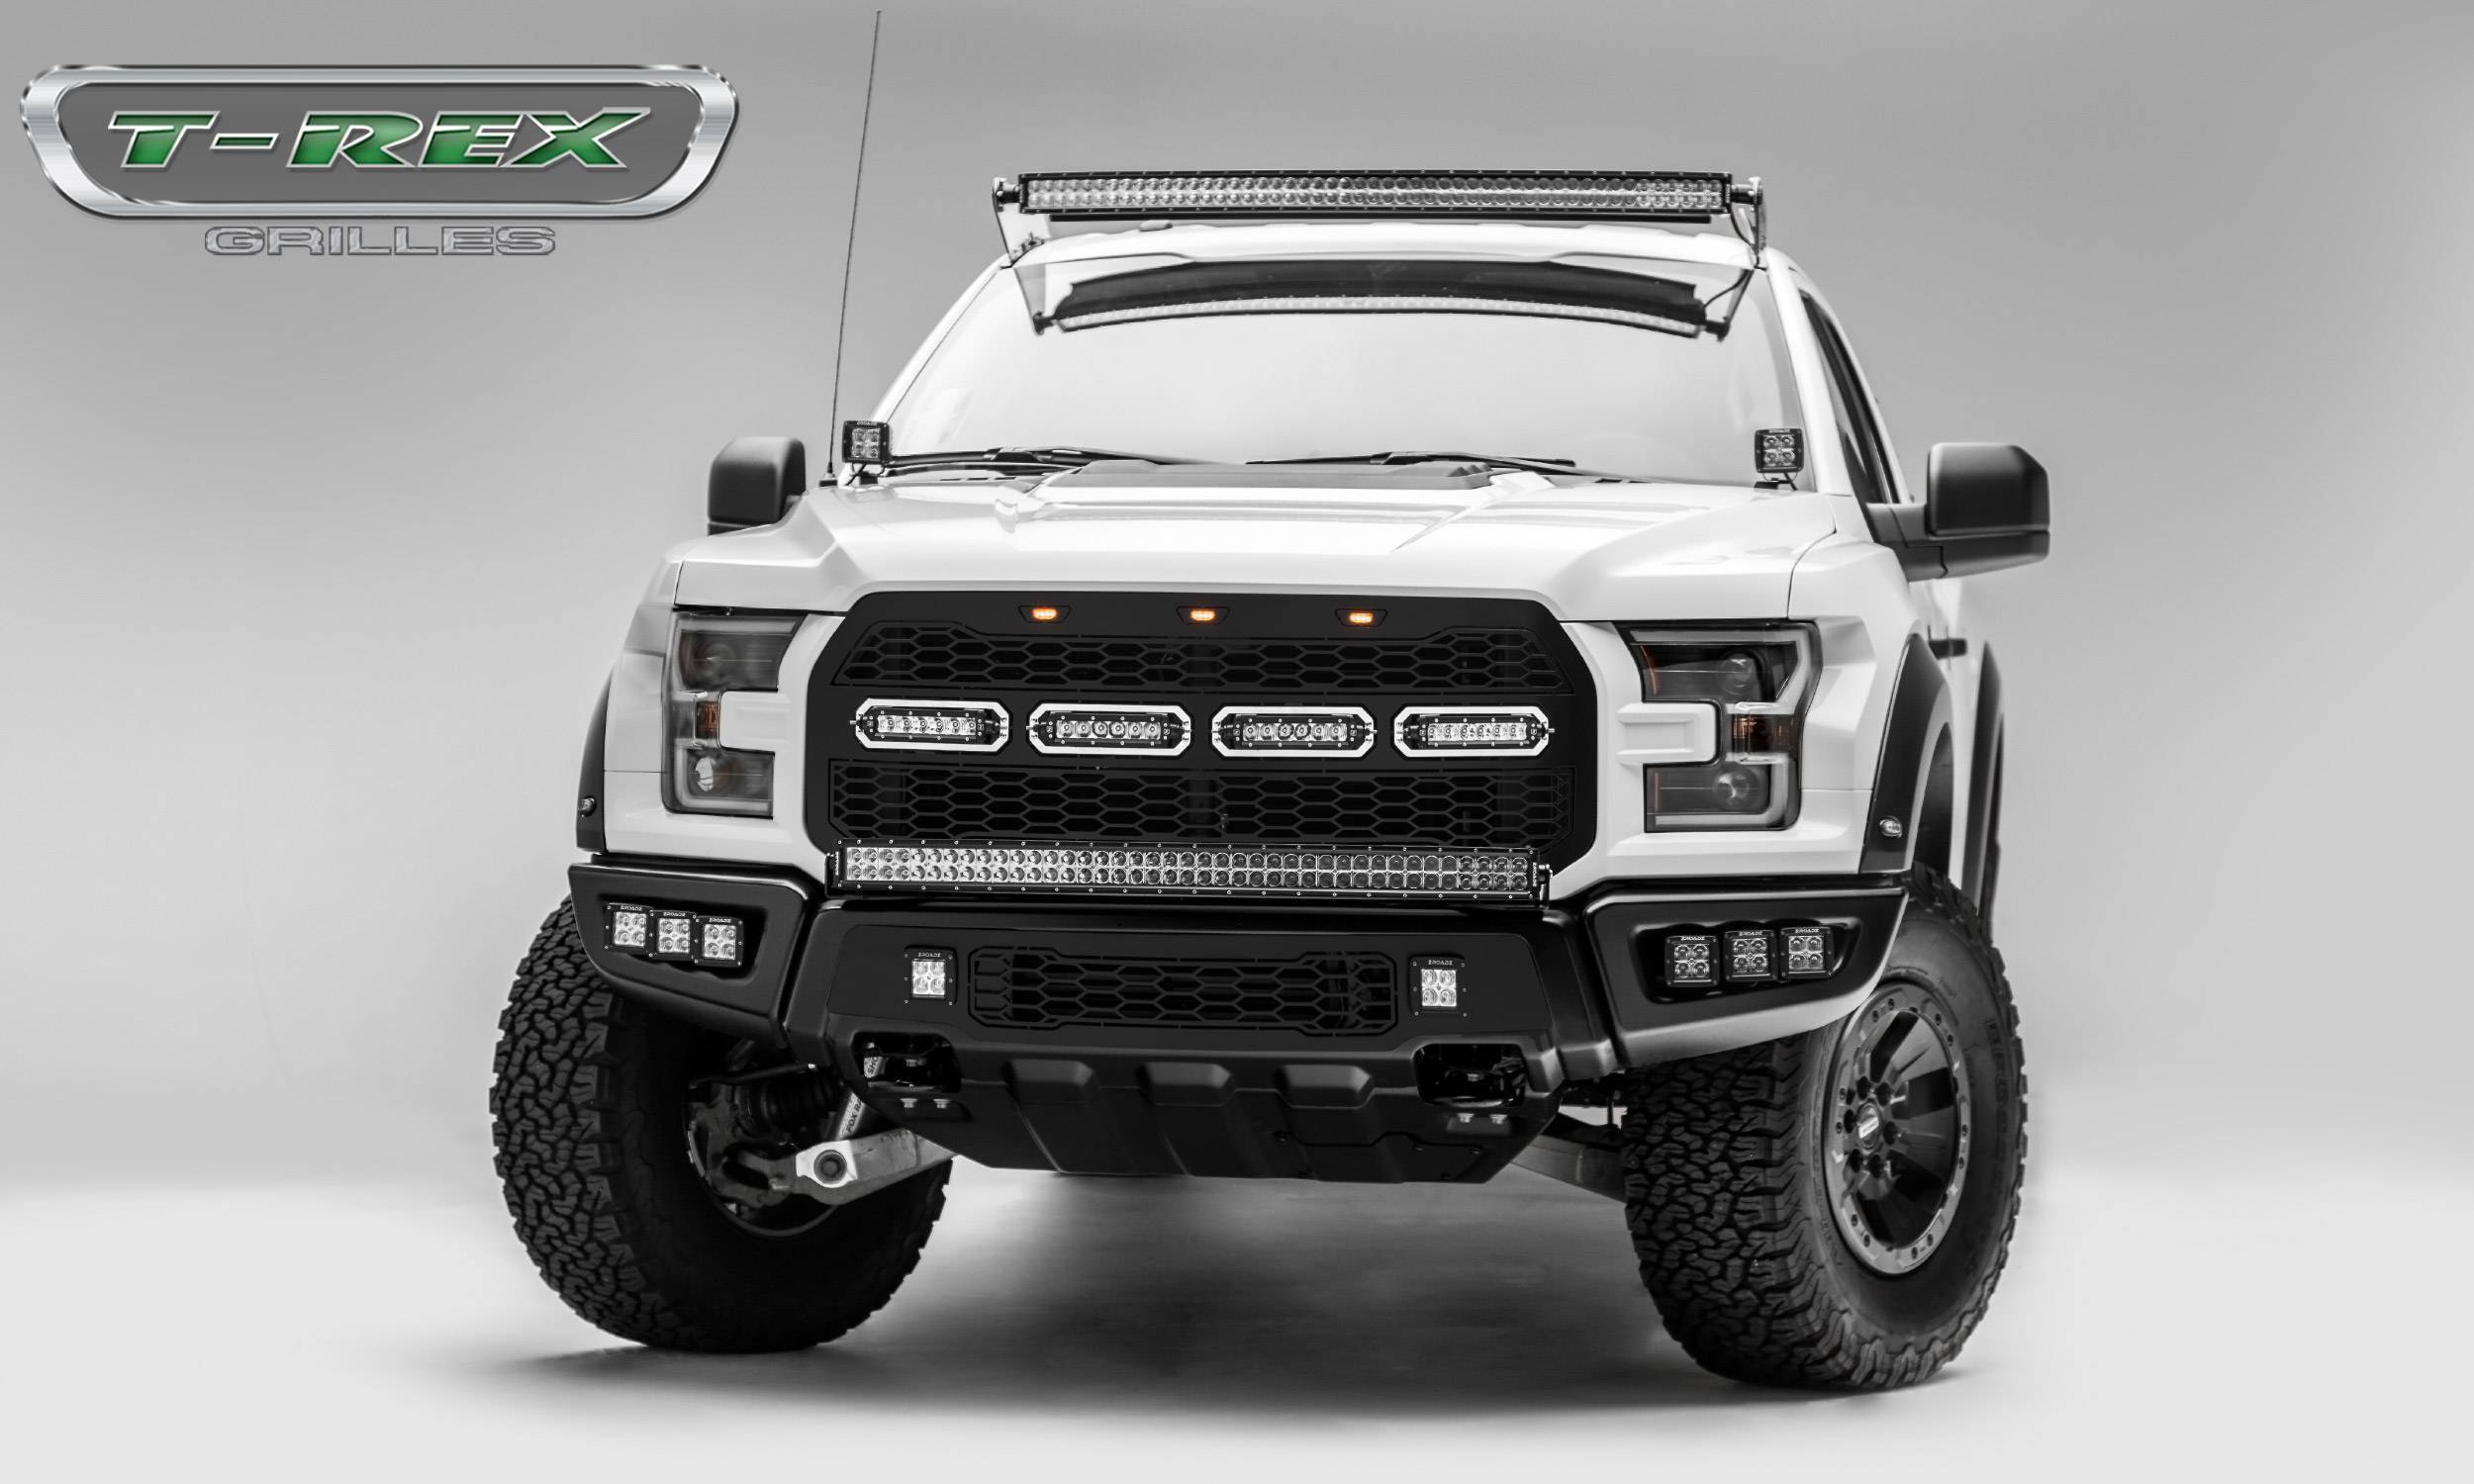 T-REX Grilles - 2017-2020 F-150 Raptor SVT Revolver Grille, Black, 1 Pc, Replacement with (4) 6 Inch LEDs, Does Not Fit Vehicles with Camera - PN #6515661